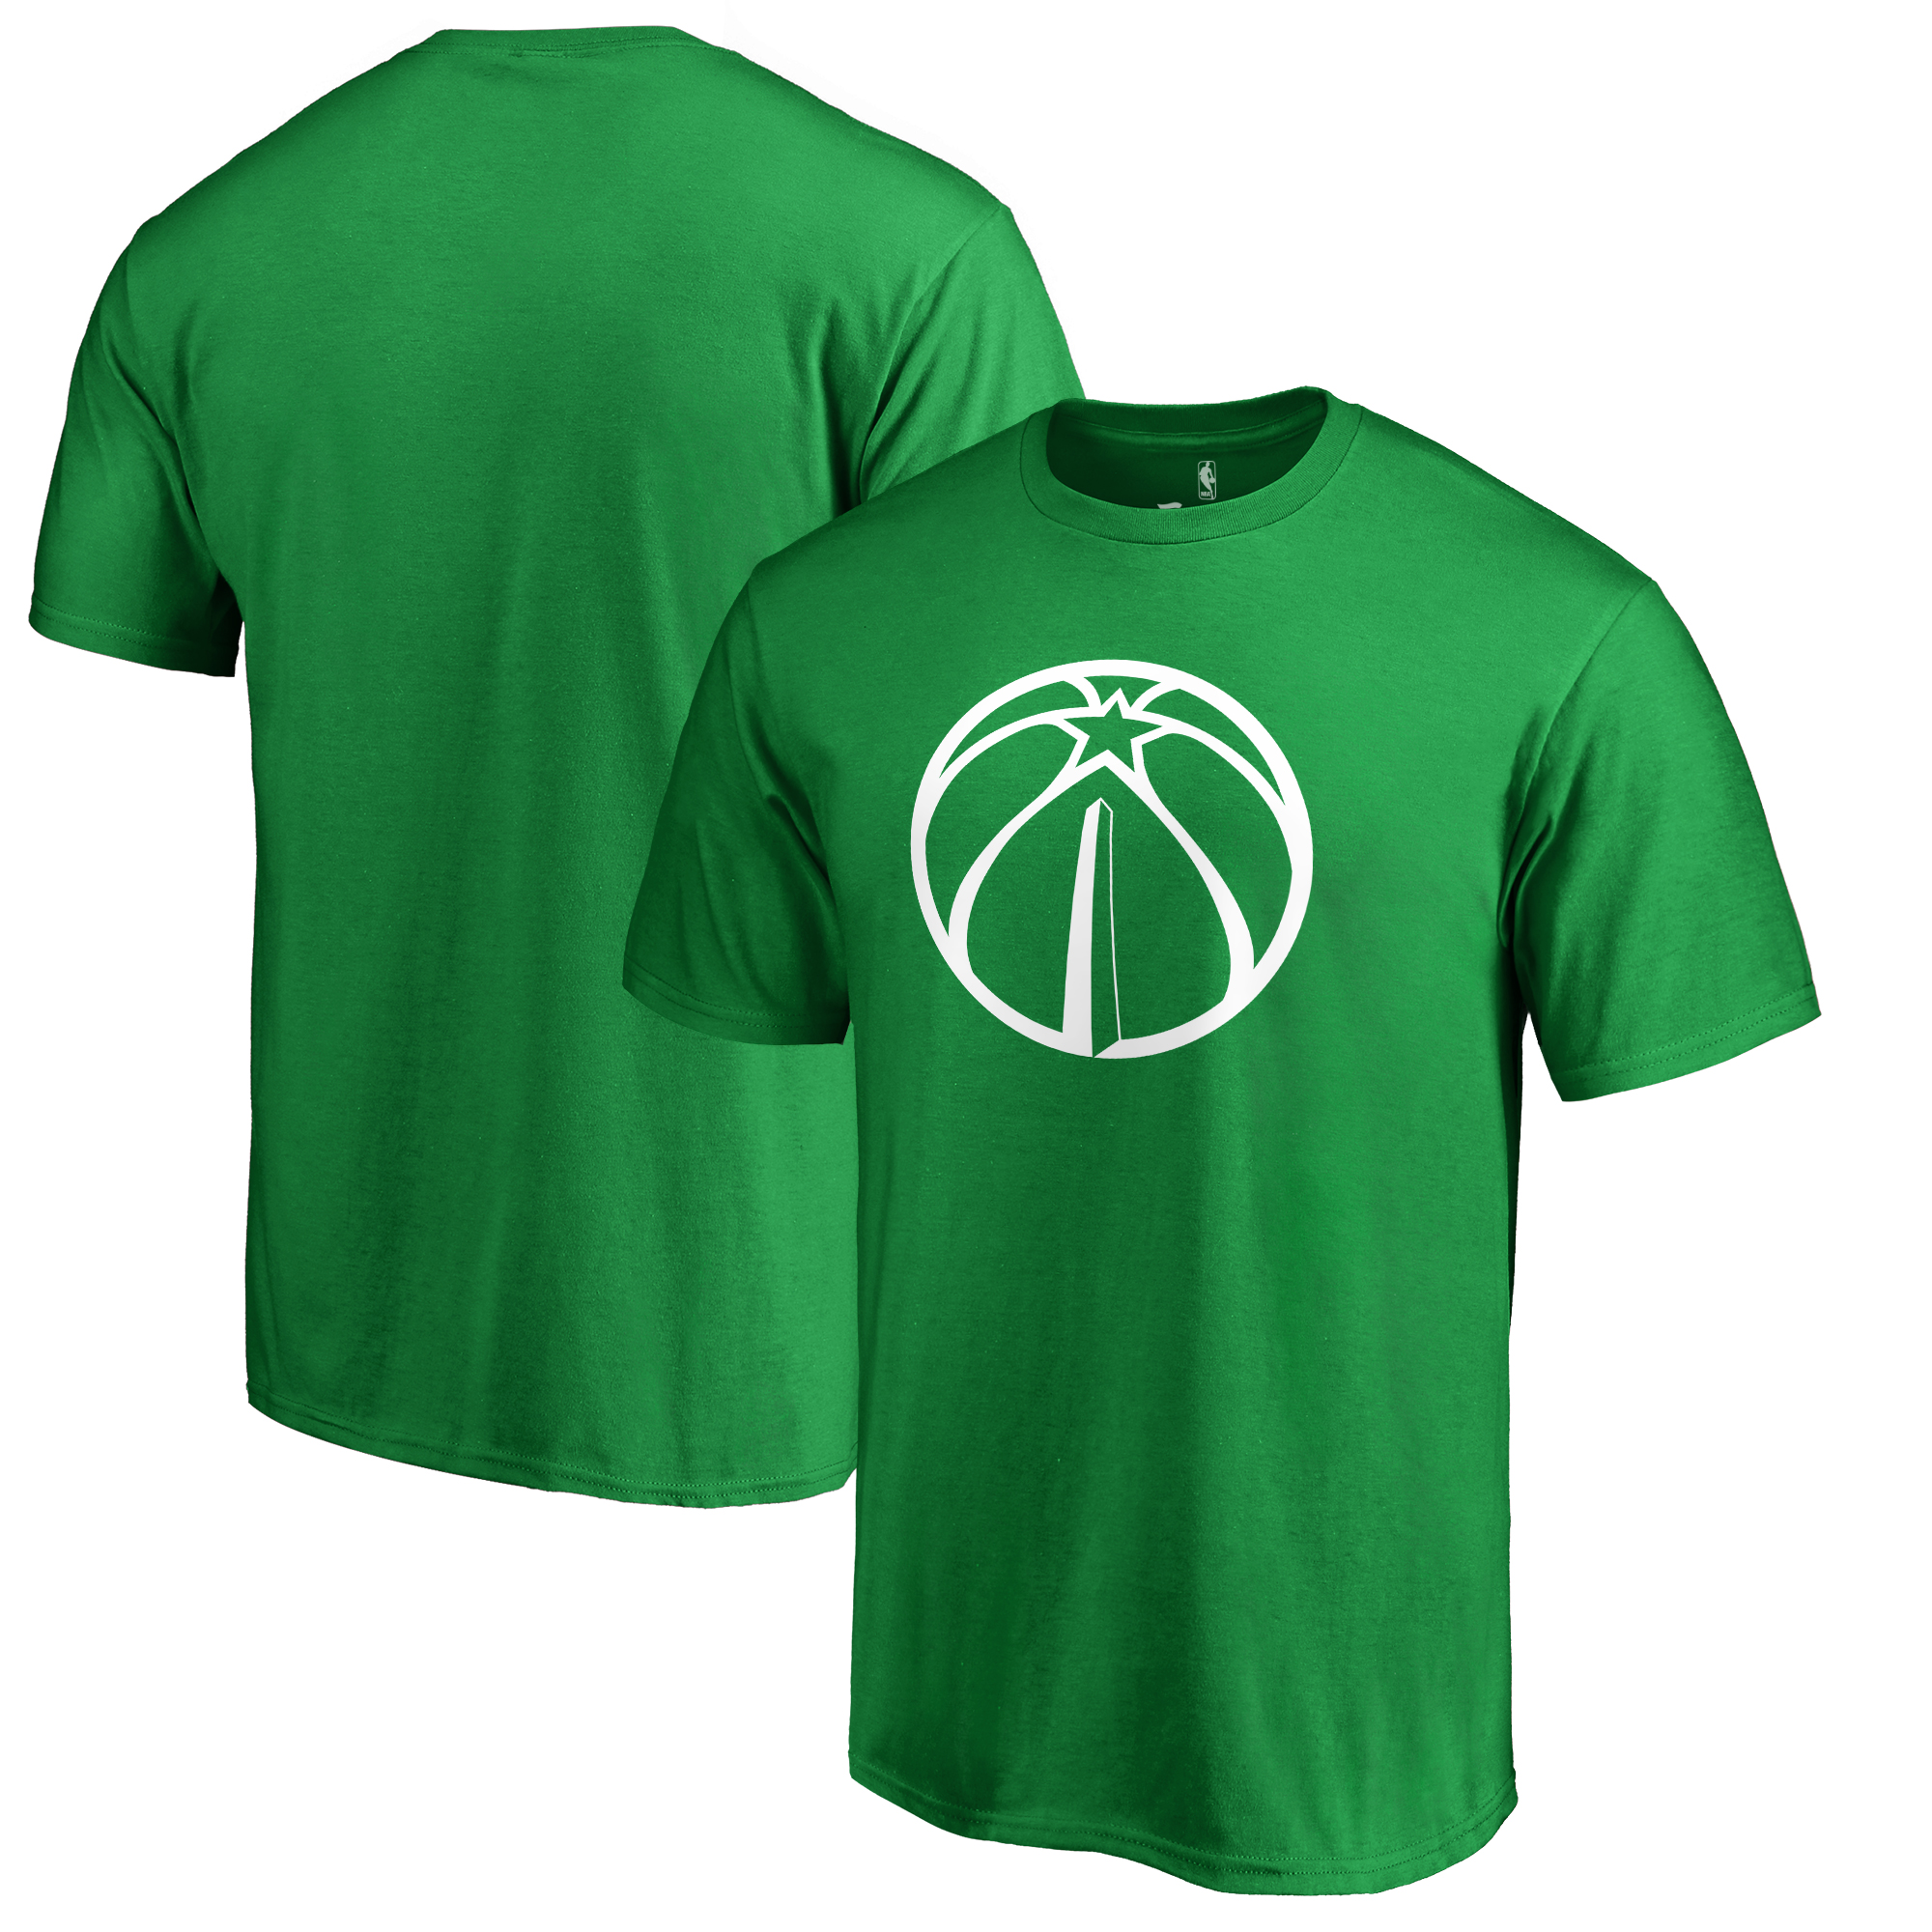 Washington Wizards Fanatics Branded Big & Tall St. Patrick's Day White Logo T-Shirt - Green